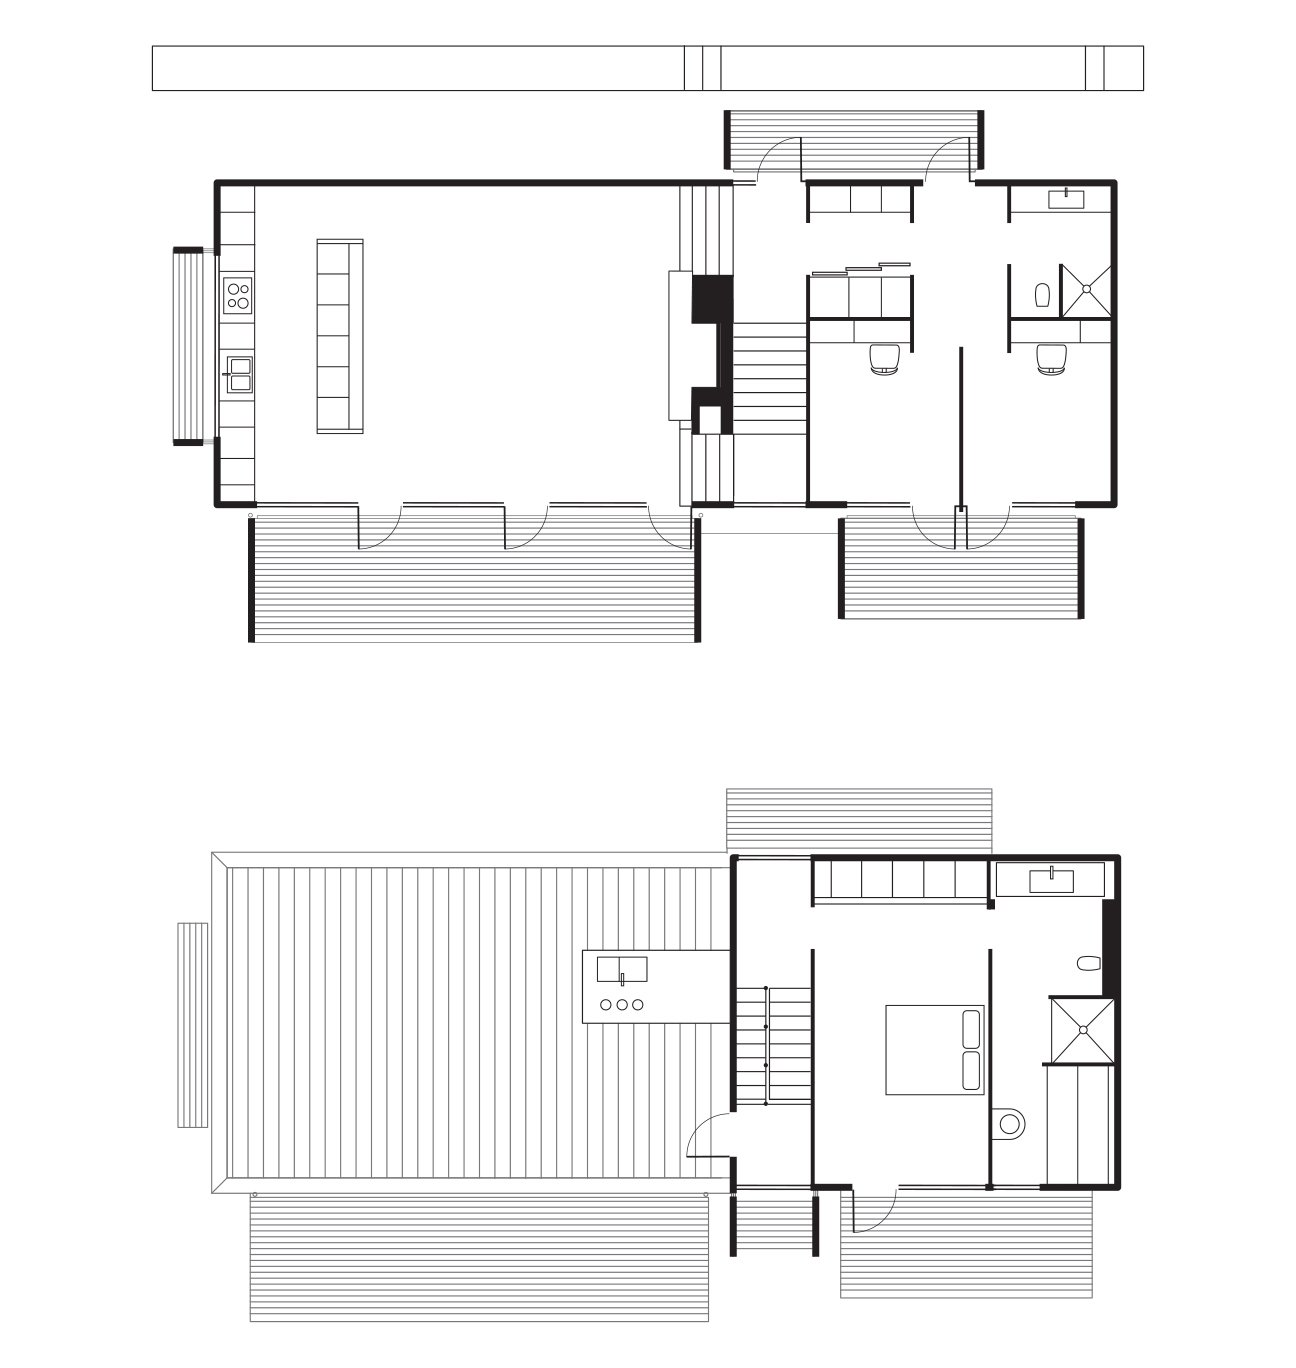 Fjällbacka House Floor Plan  A Kitchen  B Living-Dining Room  C Bedroom  D Bathroom  E Roof Deck  F Master Bedroom  G Master Bathroom